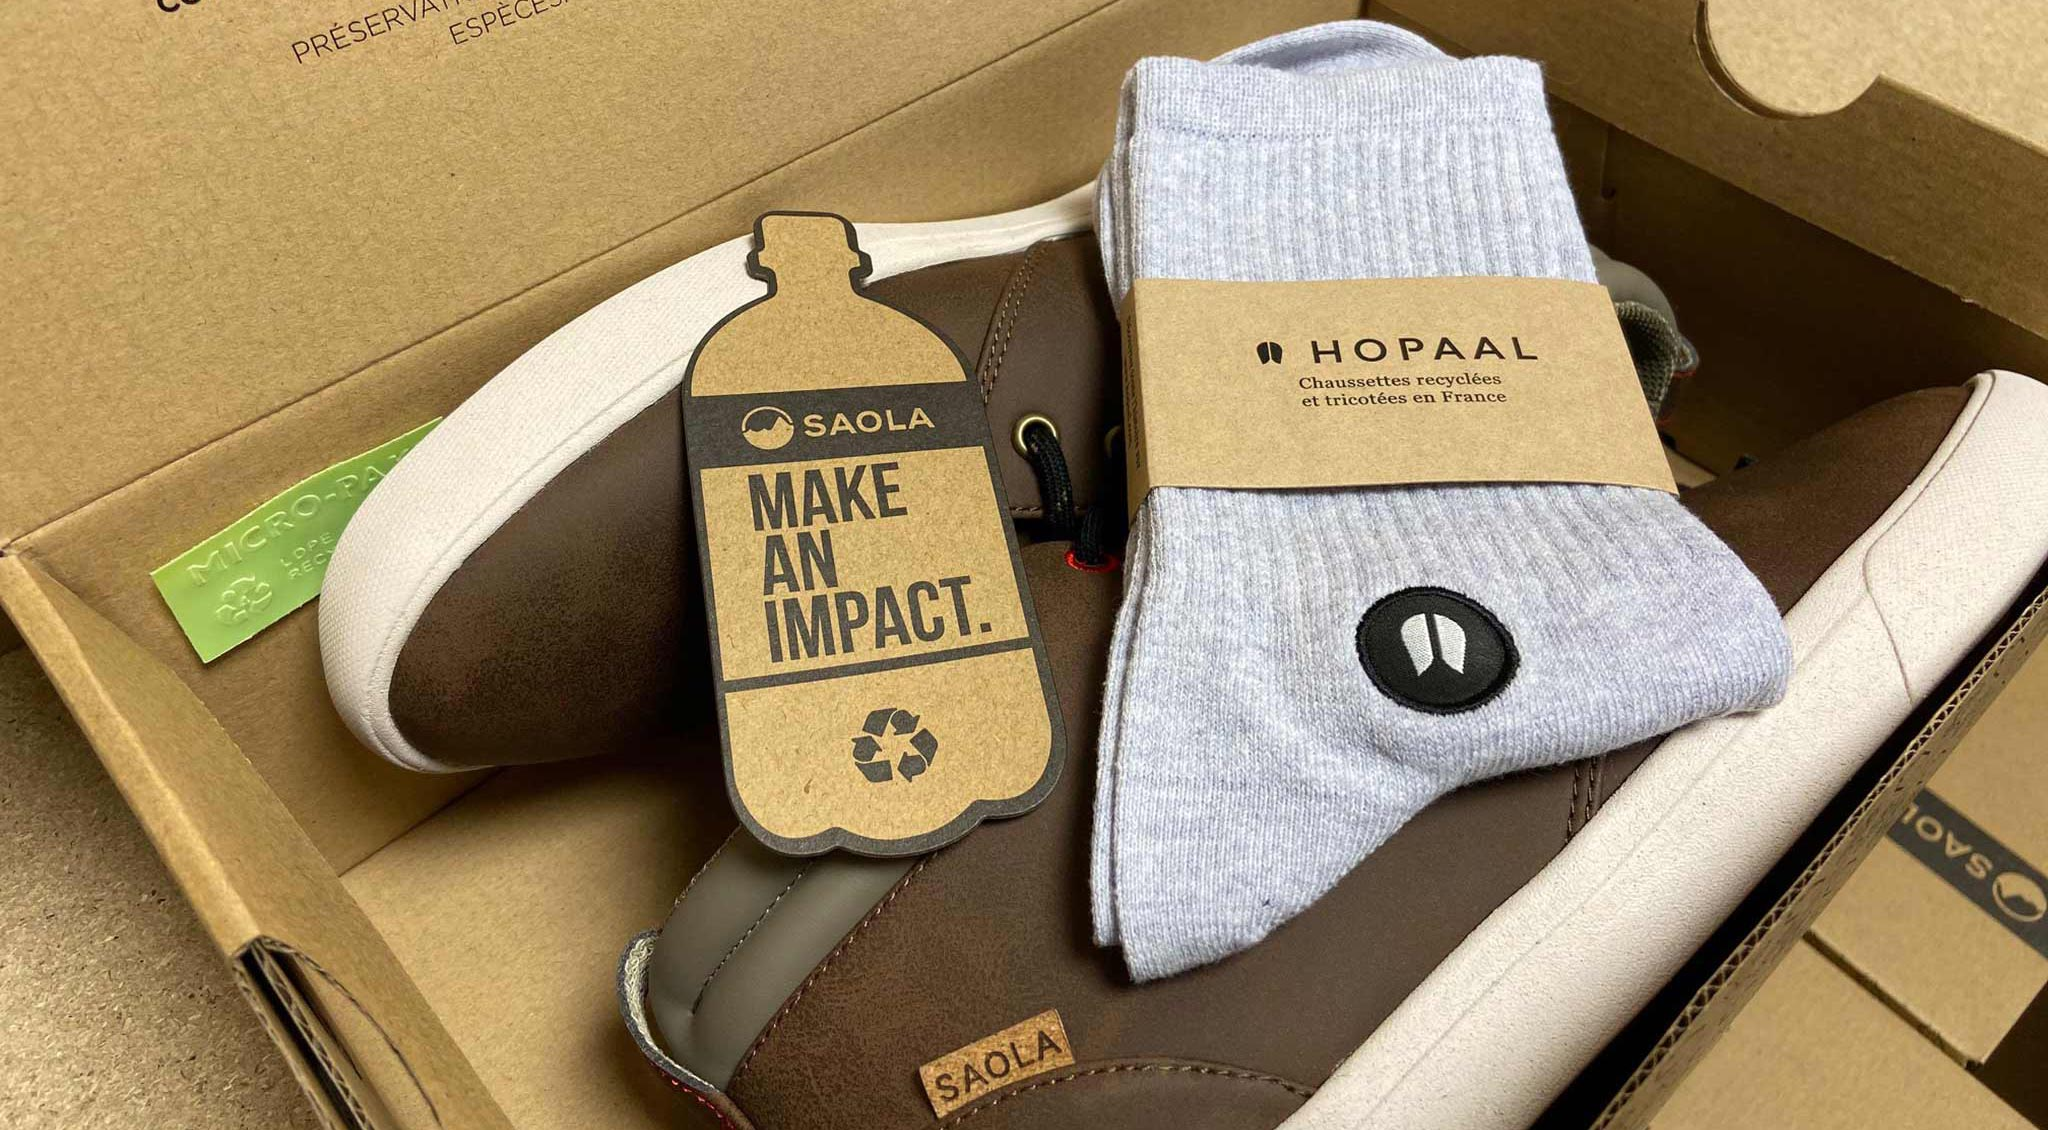 Chaussettes Hopaal offertes